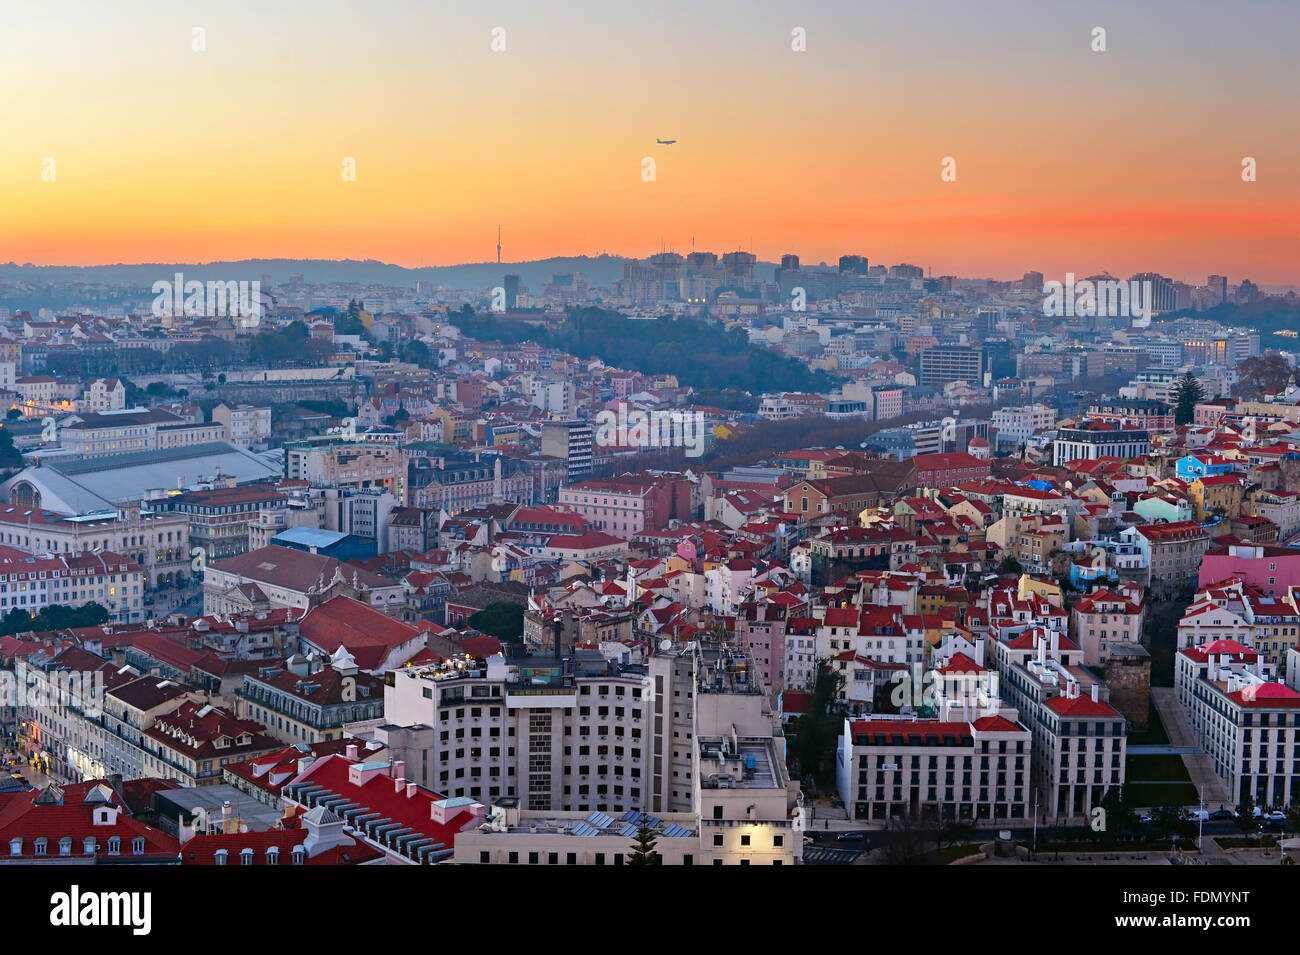 Airplane flying over the Lisbon at beautiful sunset. Portugal - Stock Image